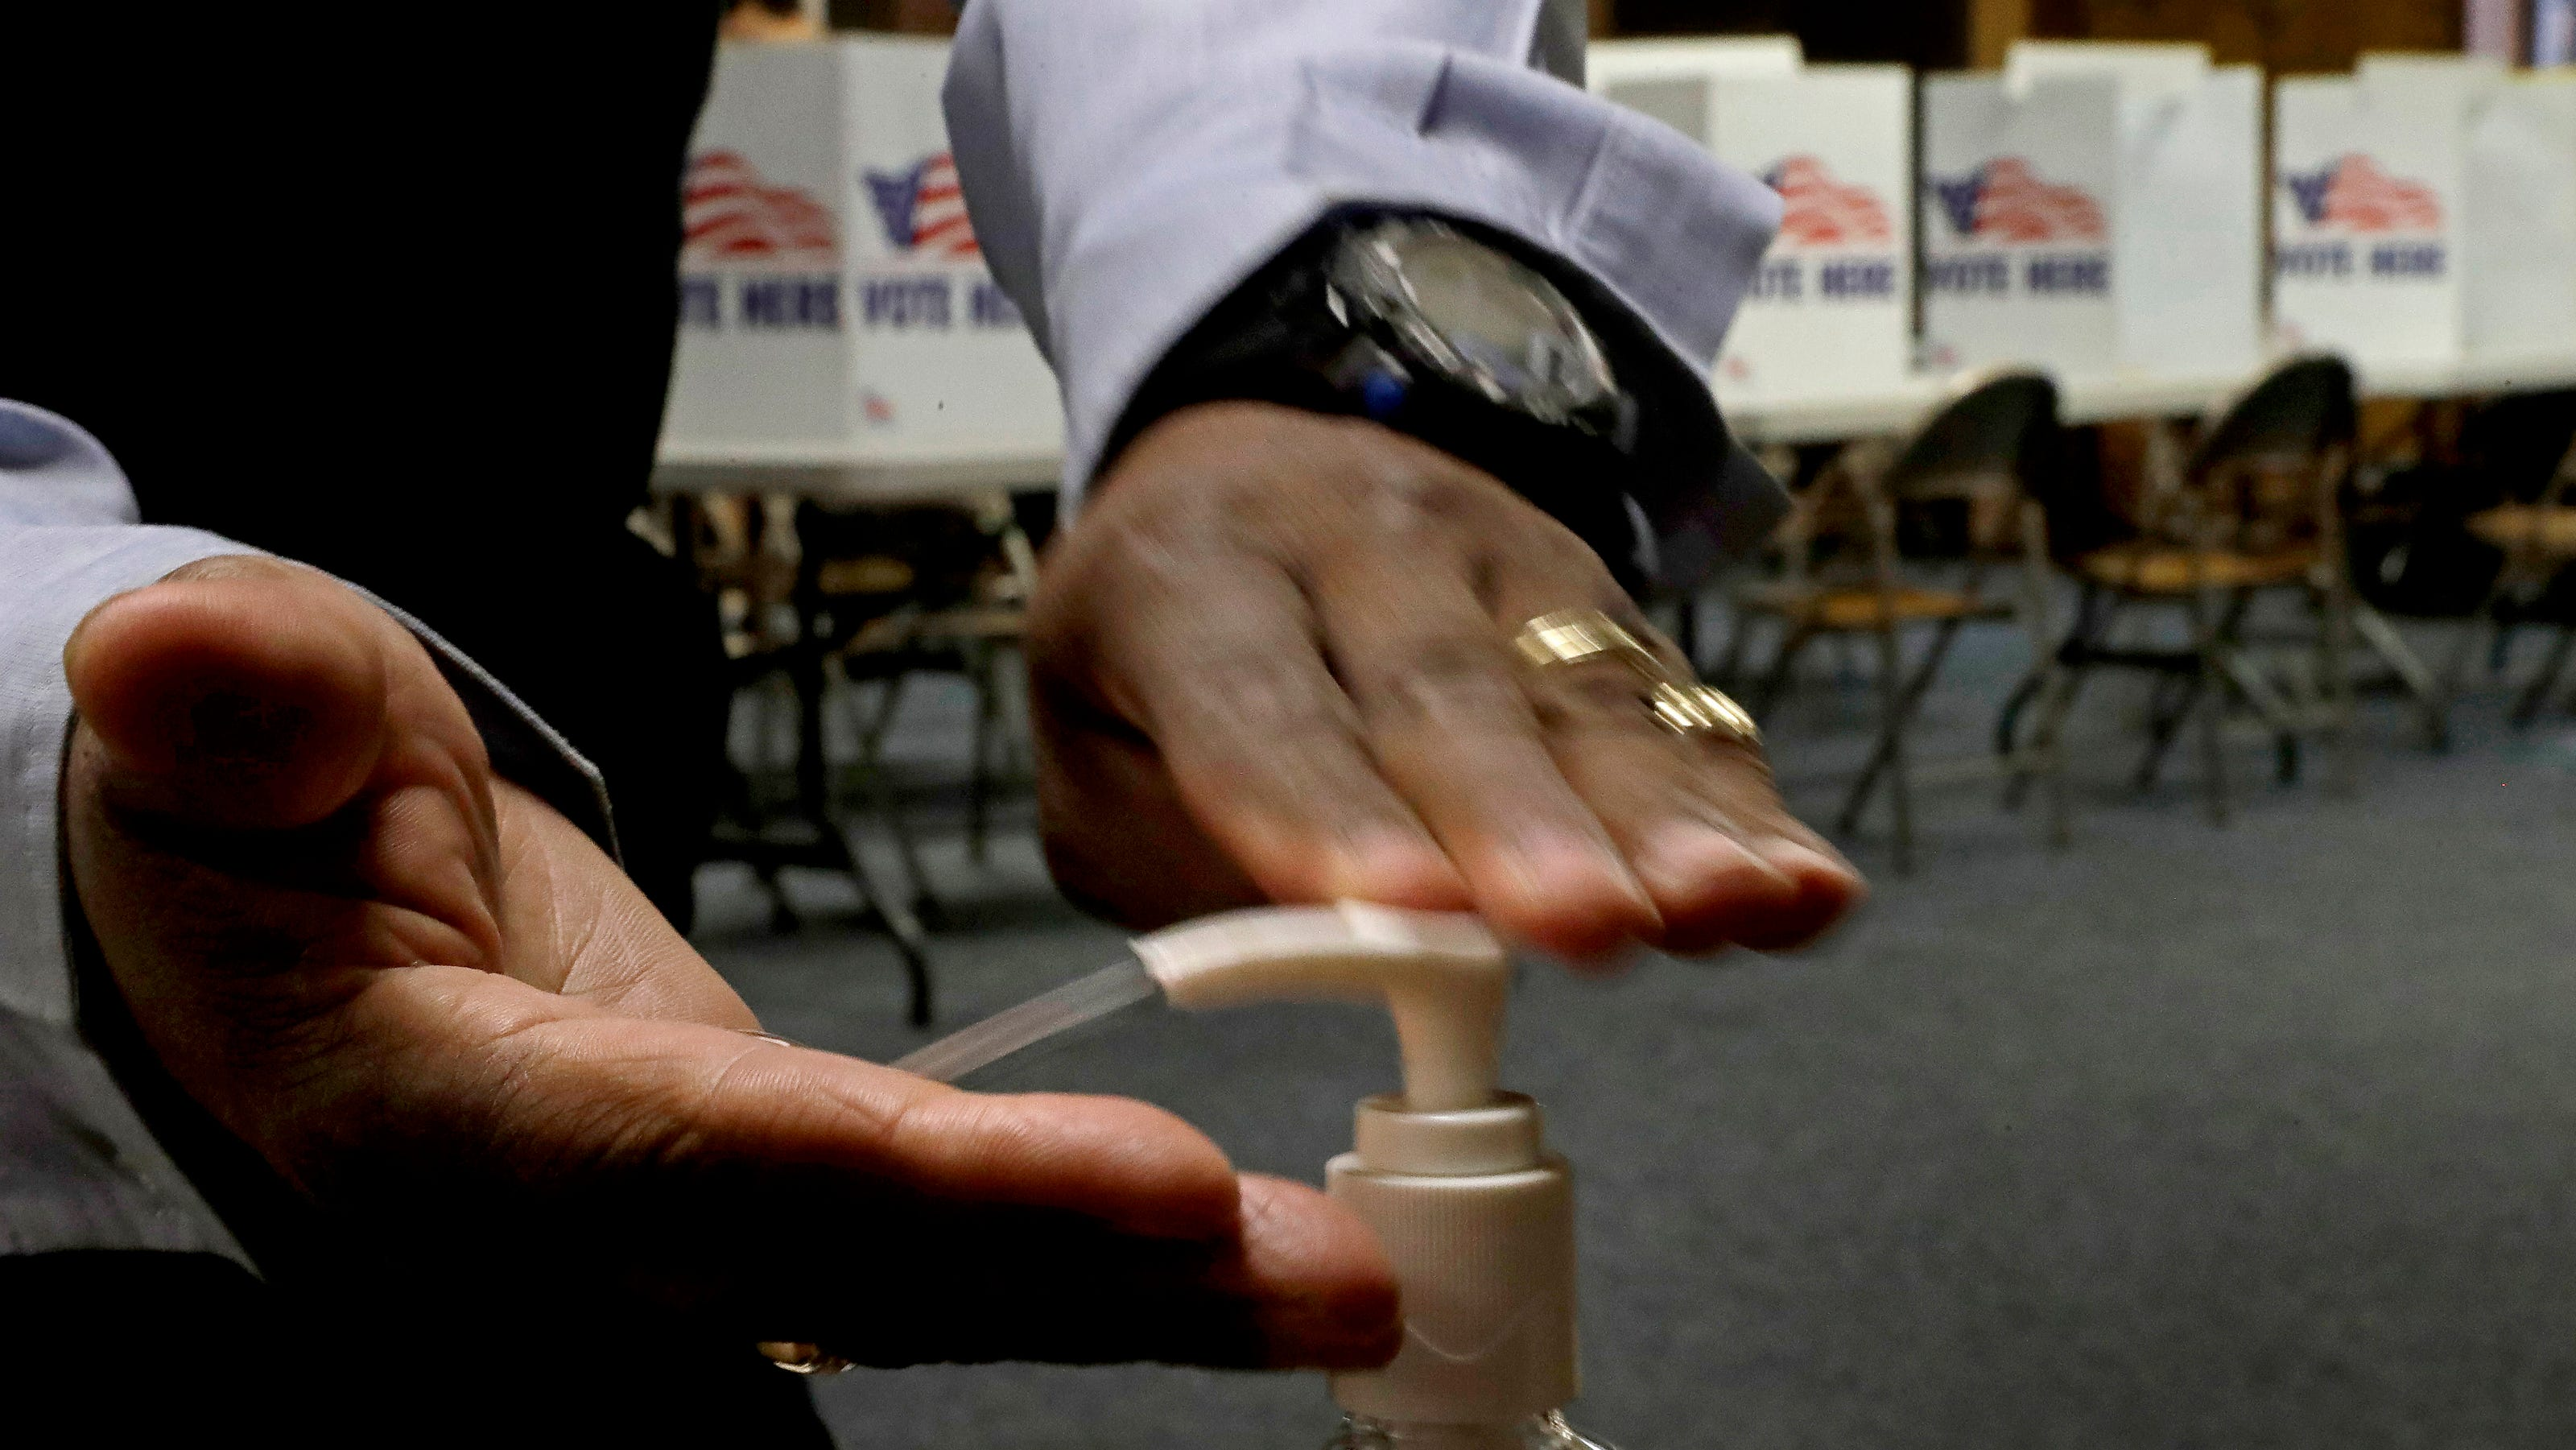 Close-up of a man squirting sanitizer into his hands, with voting booths in the background